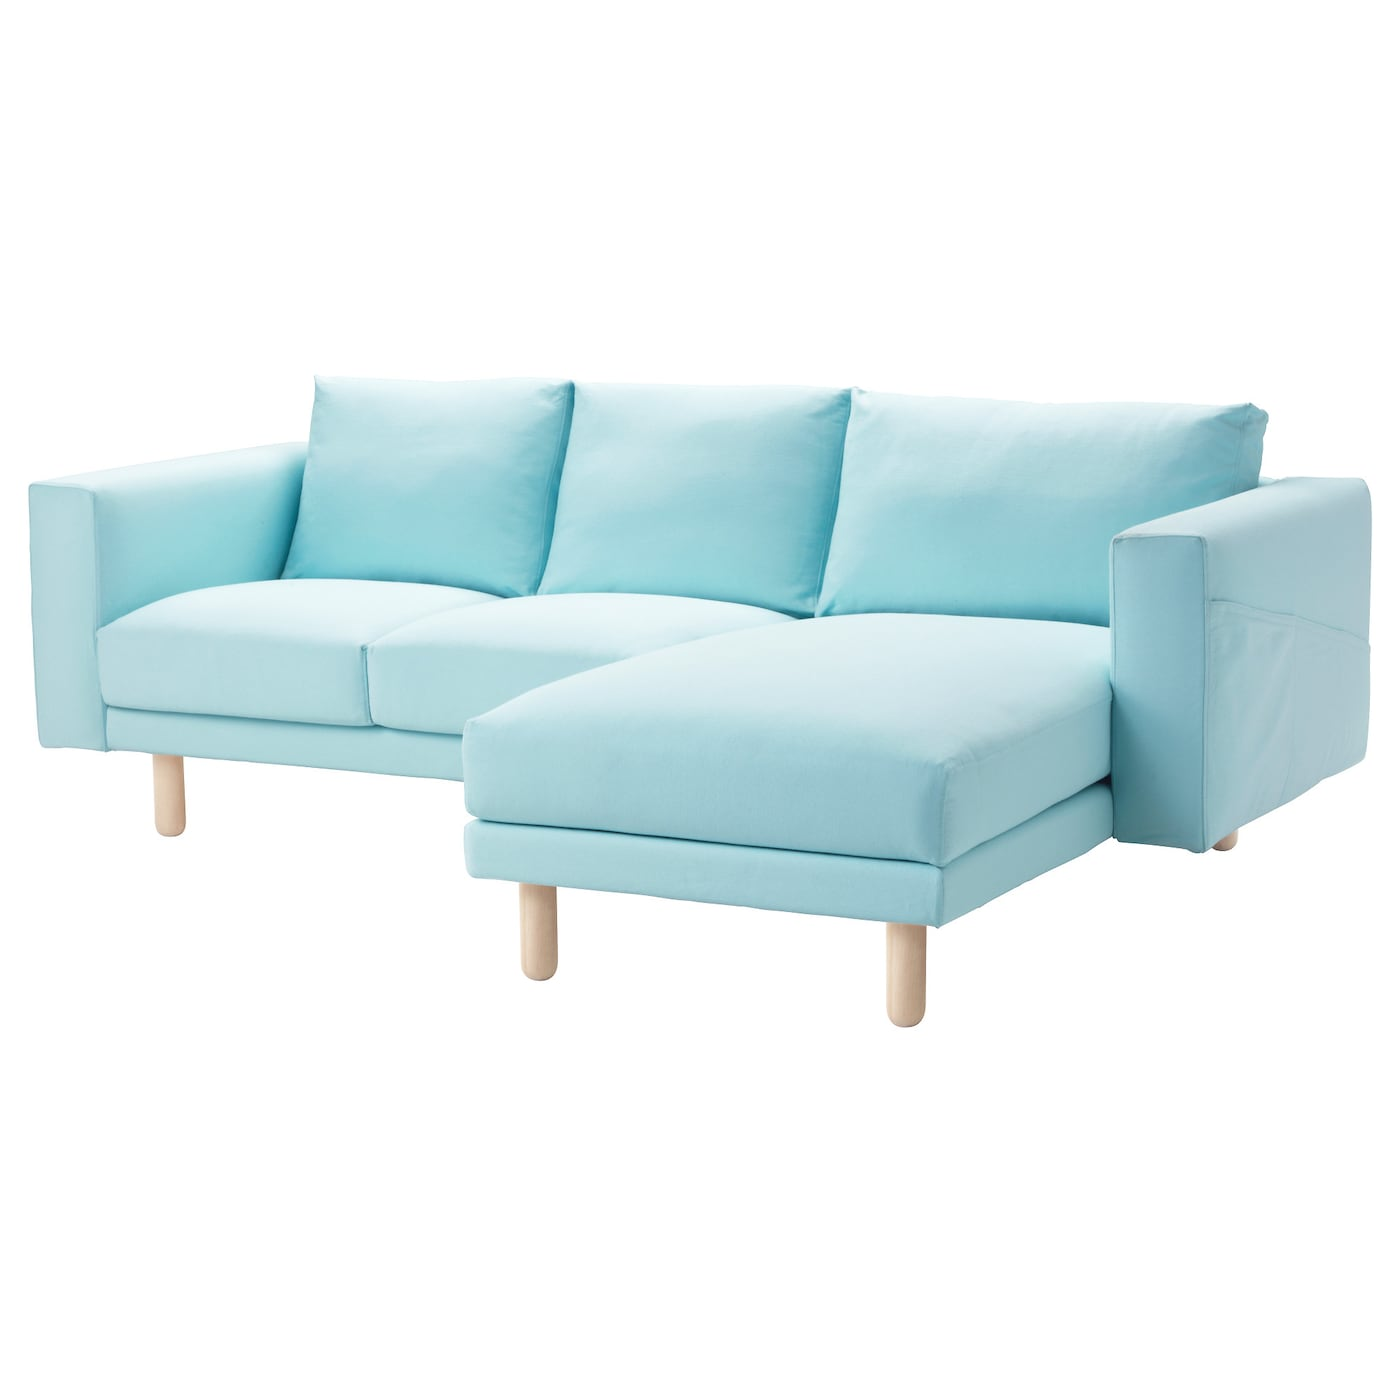 Norsborg two seat sofa with chaise longue gr sbo light for 2 seater lounge with chaise